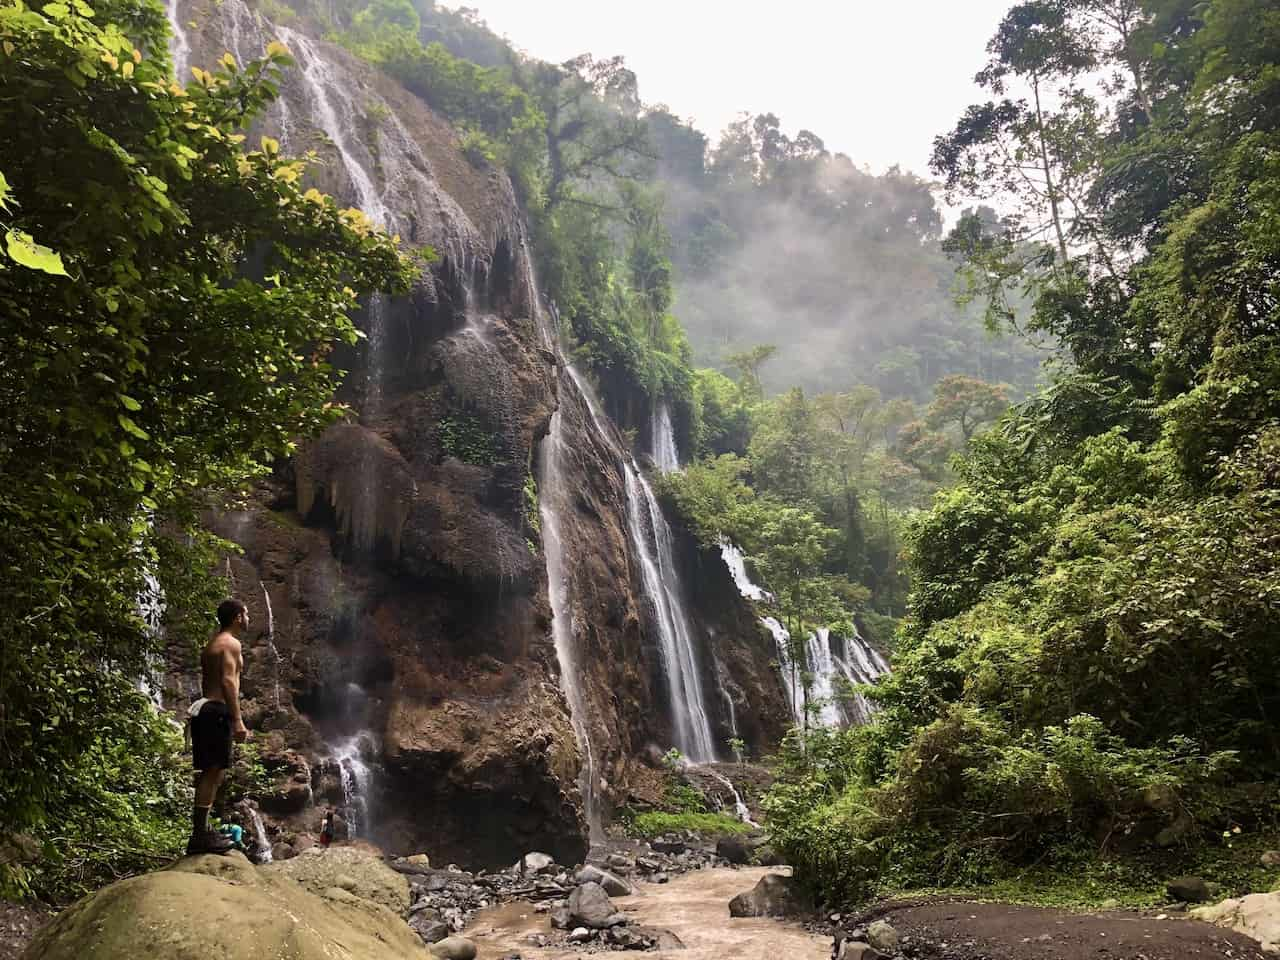 Goa Tetes Waterfall Valley